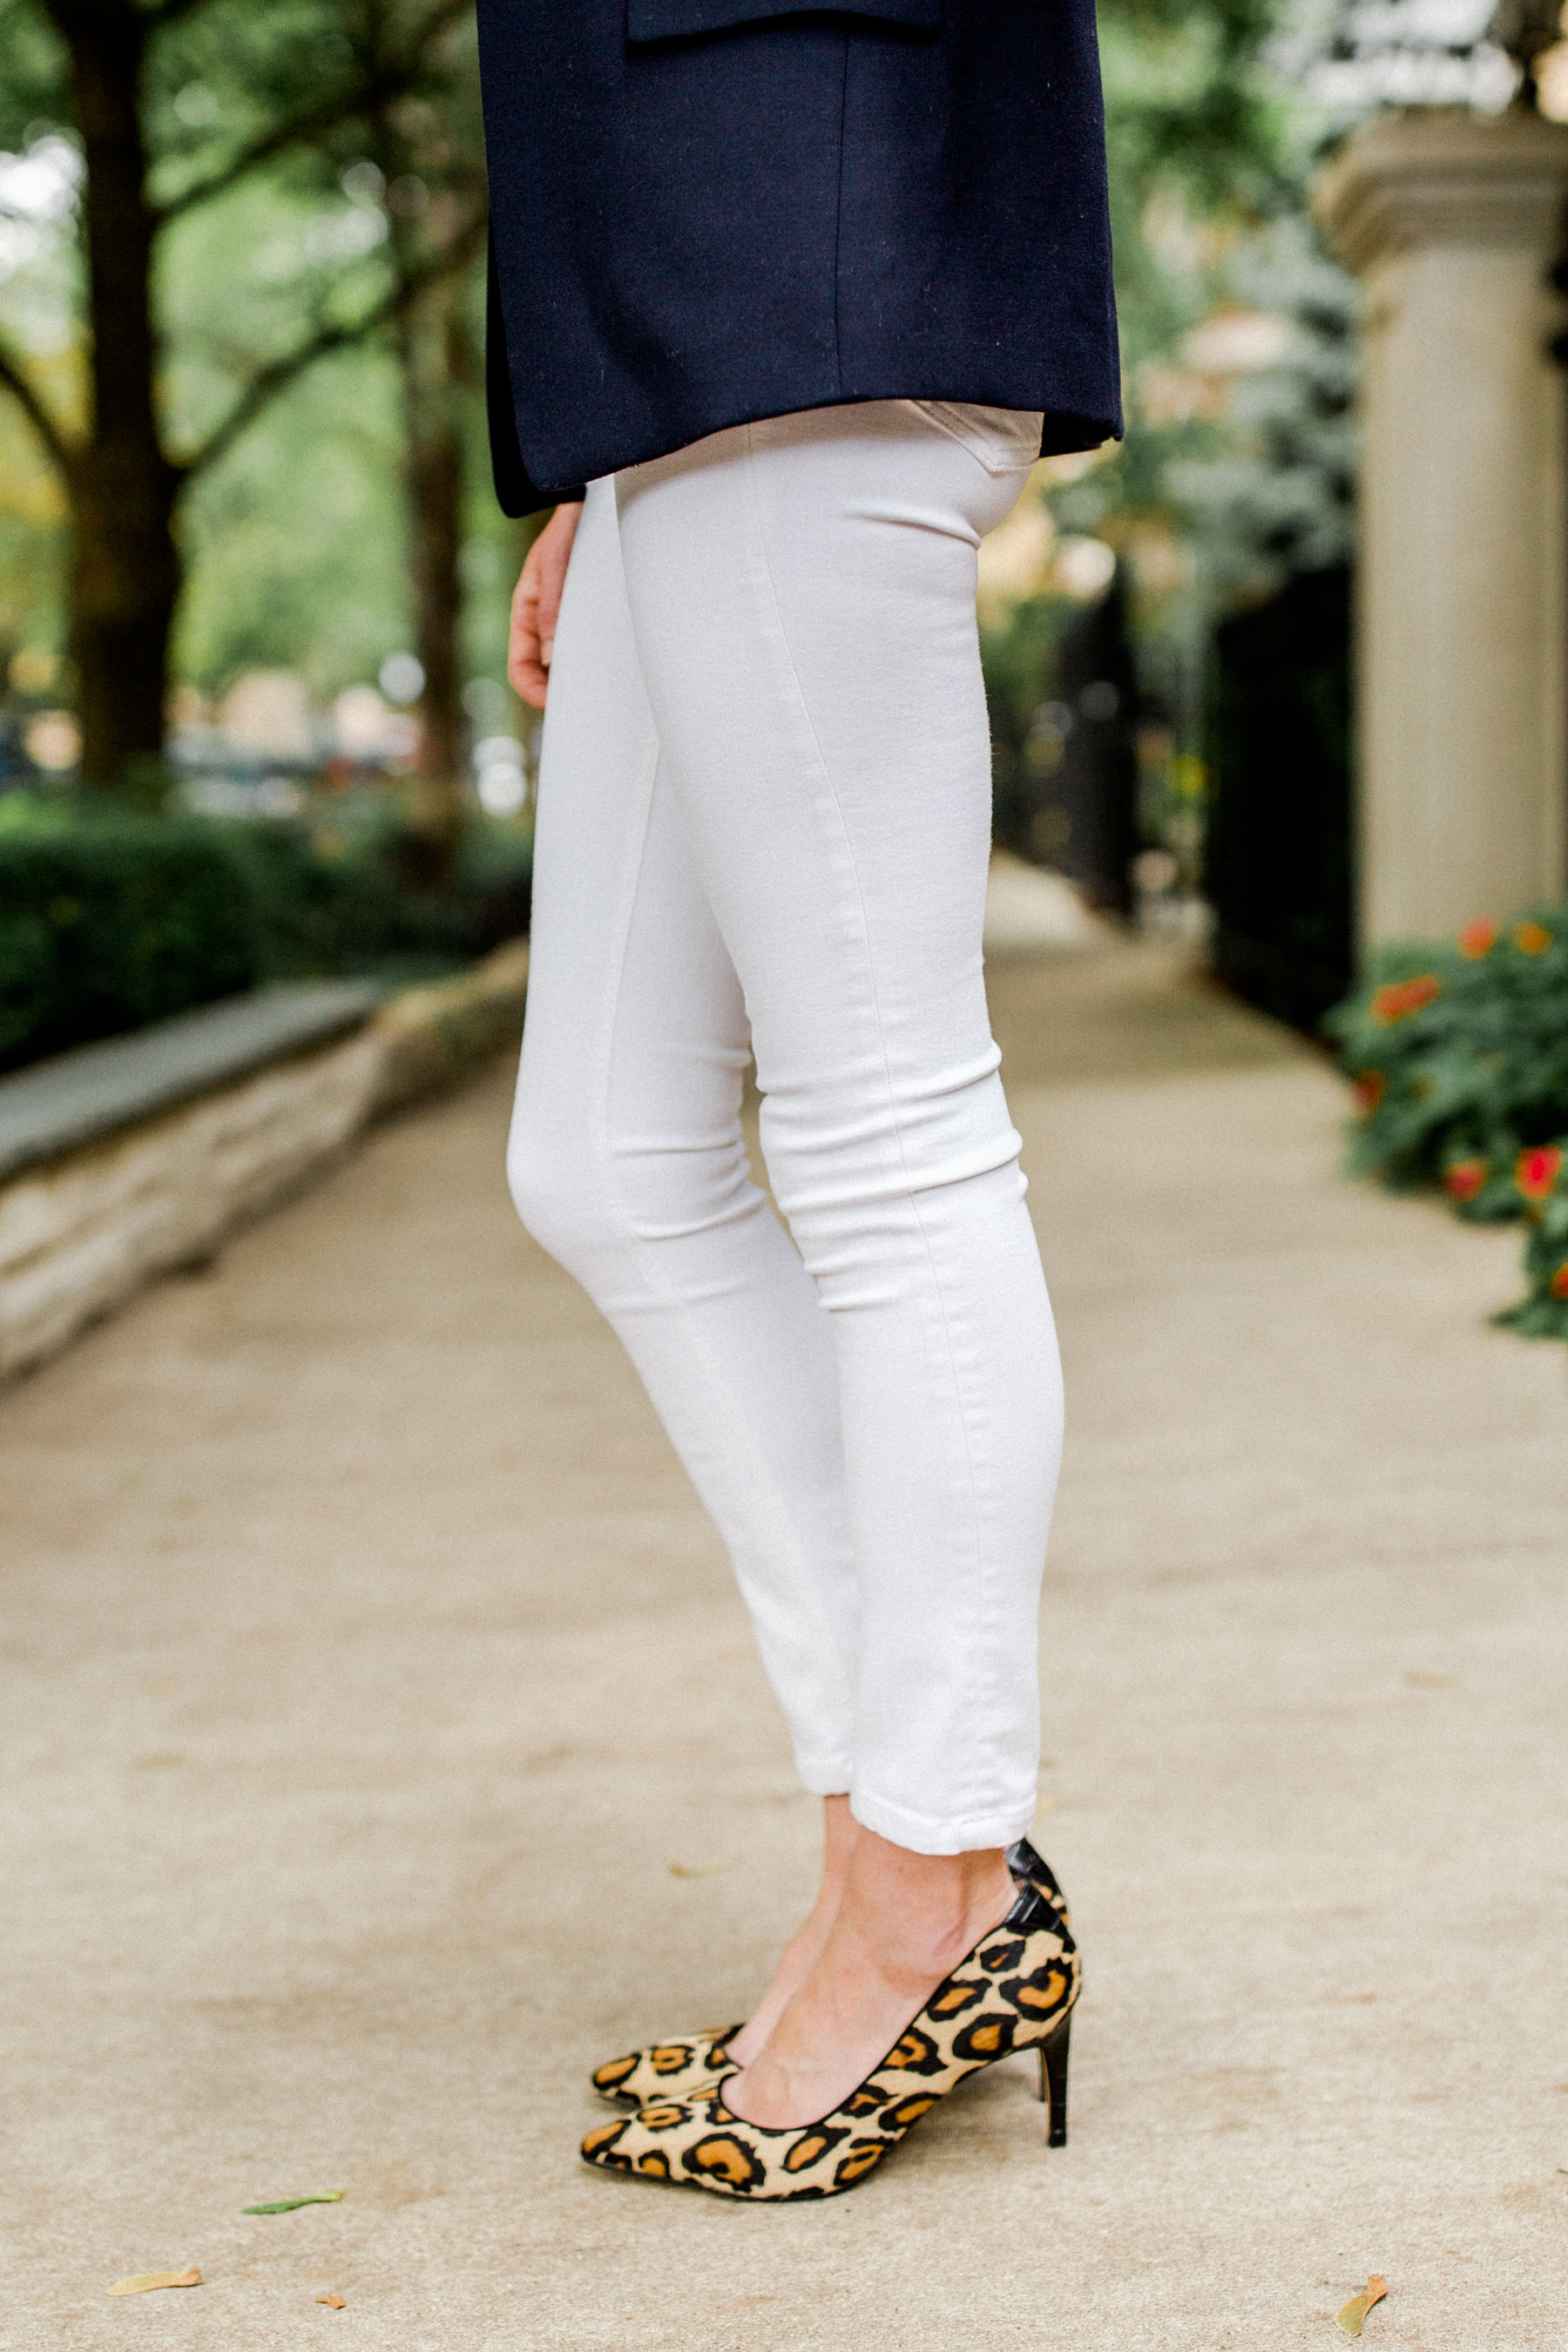 8ff0d5c32c 10 Great Pairs of Skinny Jeans - The Best Denim For Preppy Style